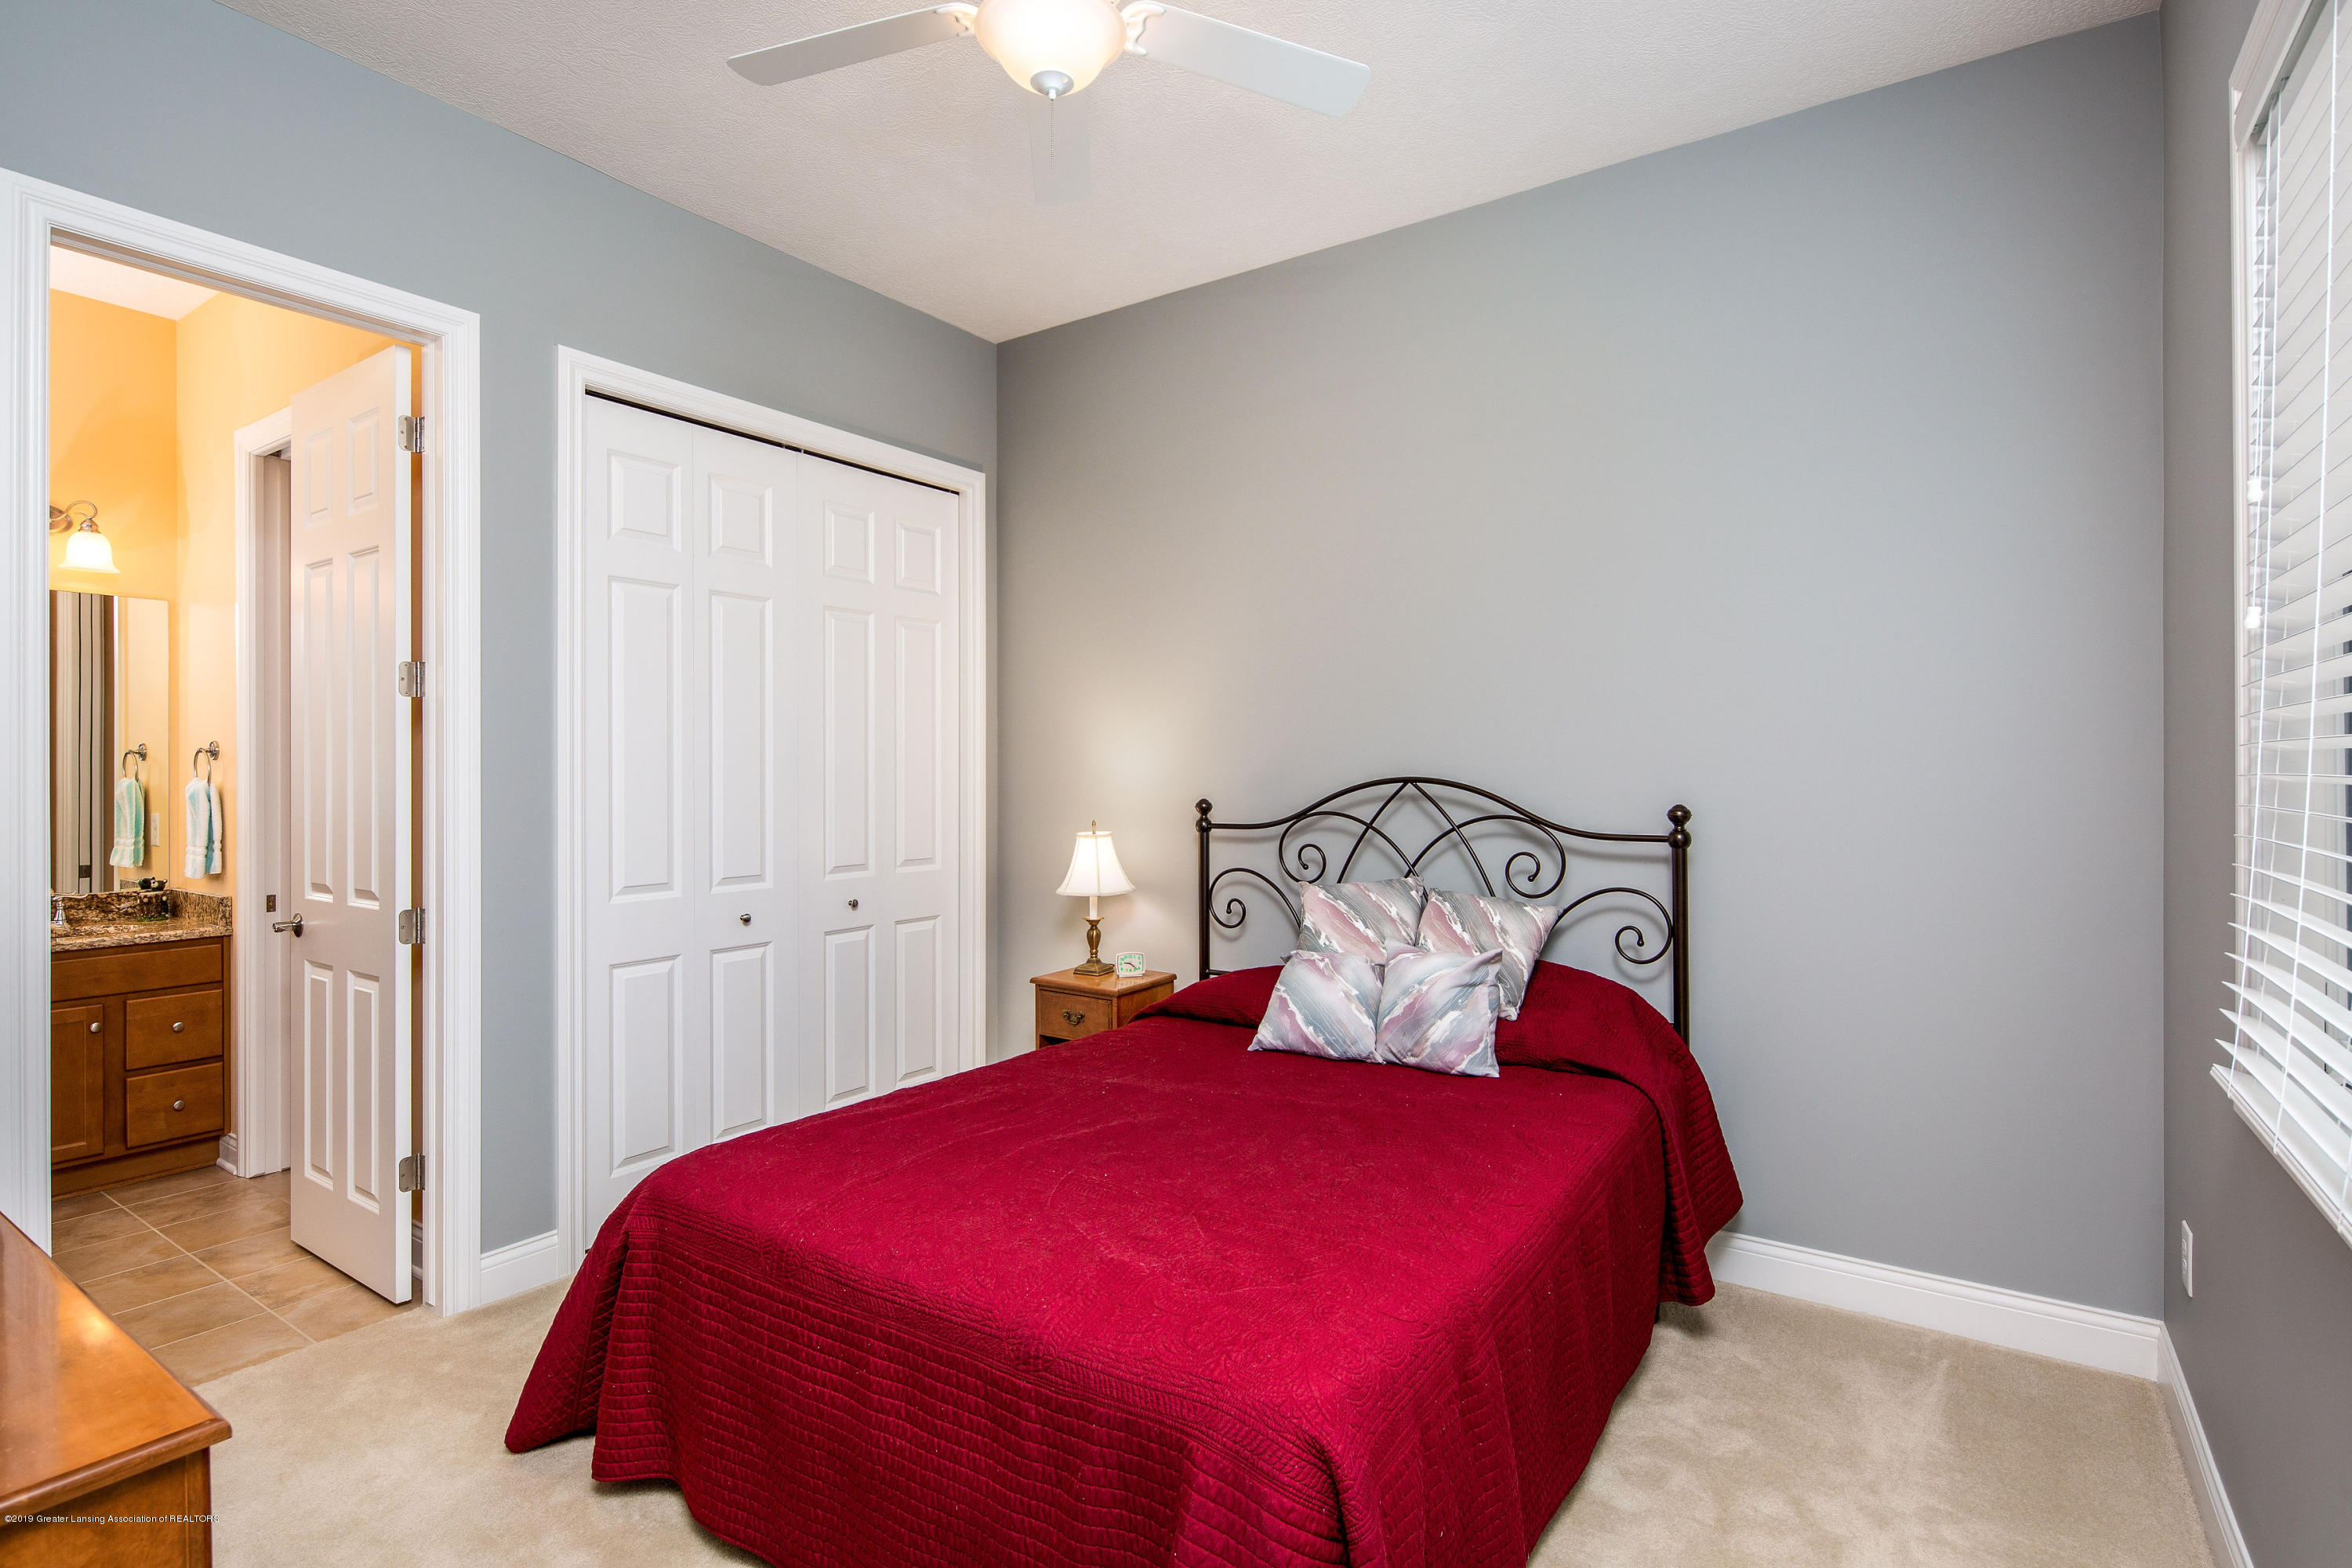 6257 Mereford Ct - 20190426-942A2711-Edit - 23